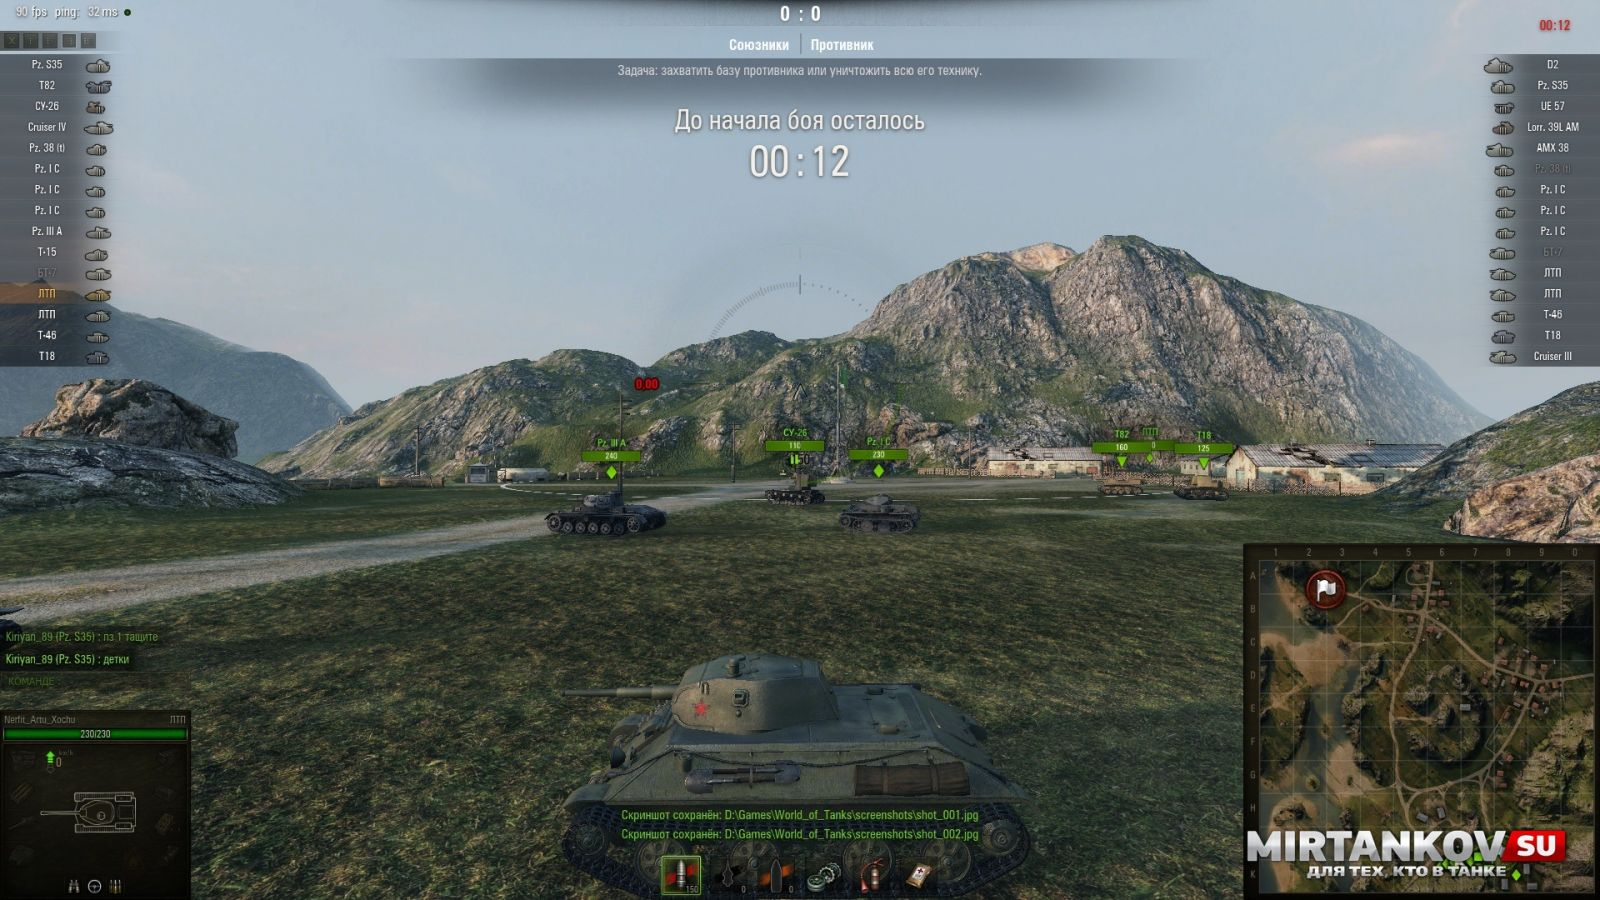 wot mod loader game resource path does not exist